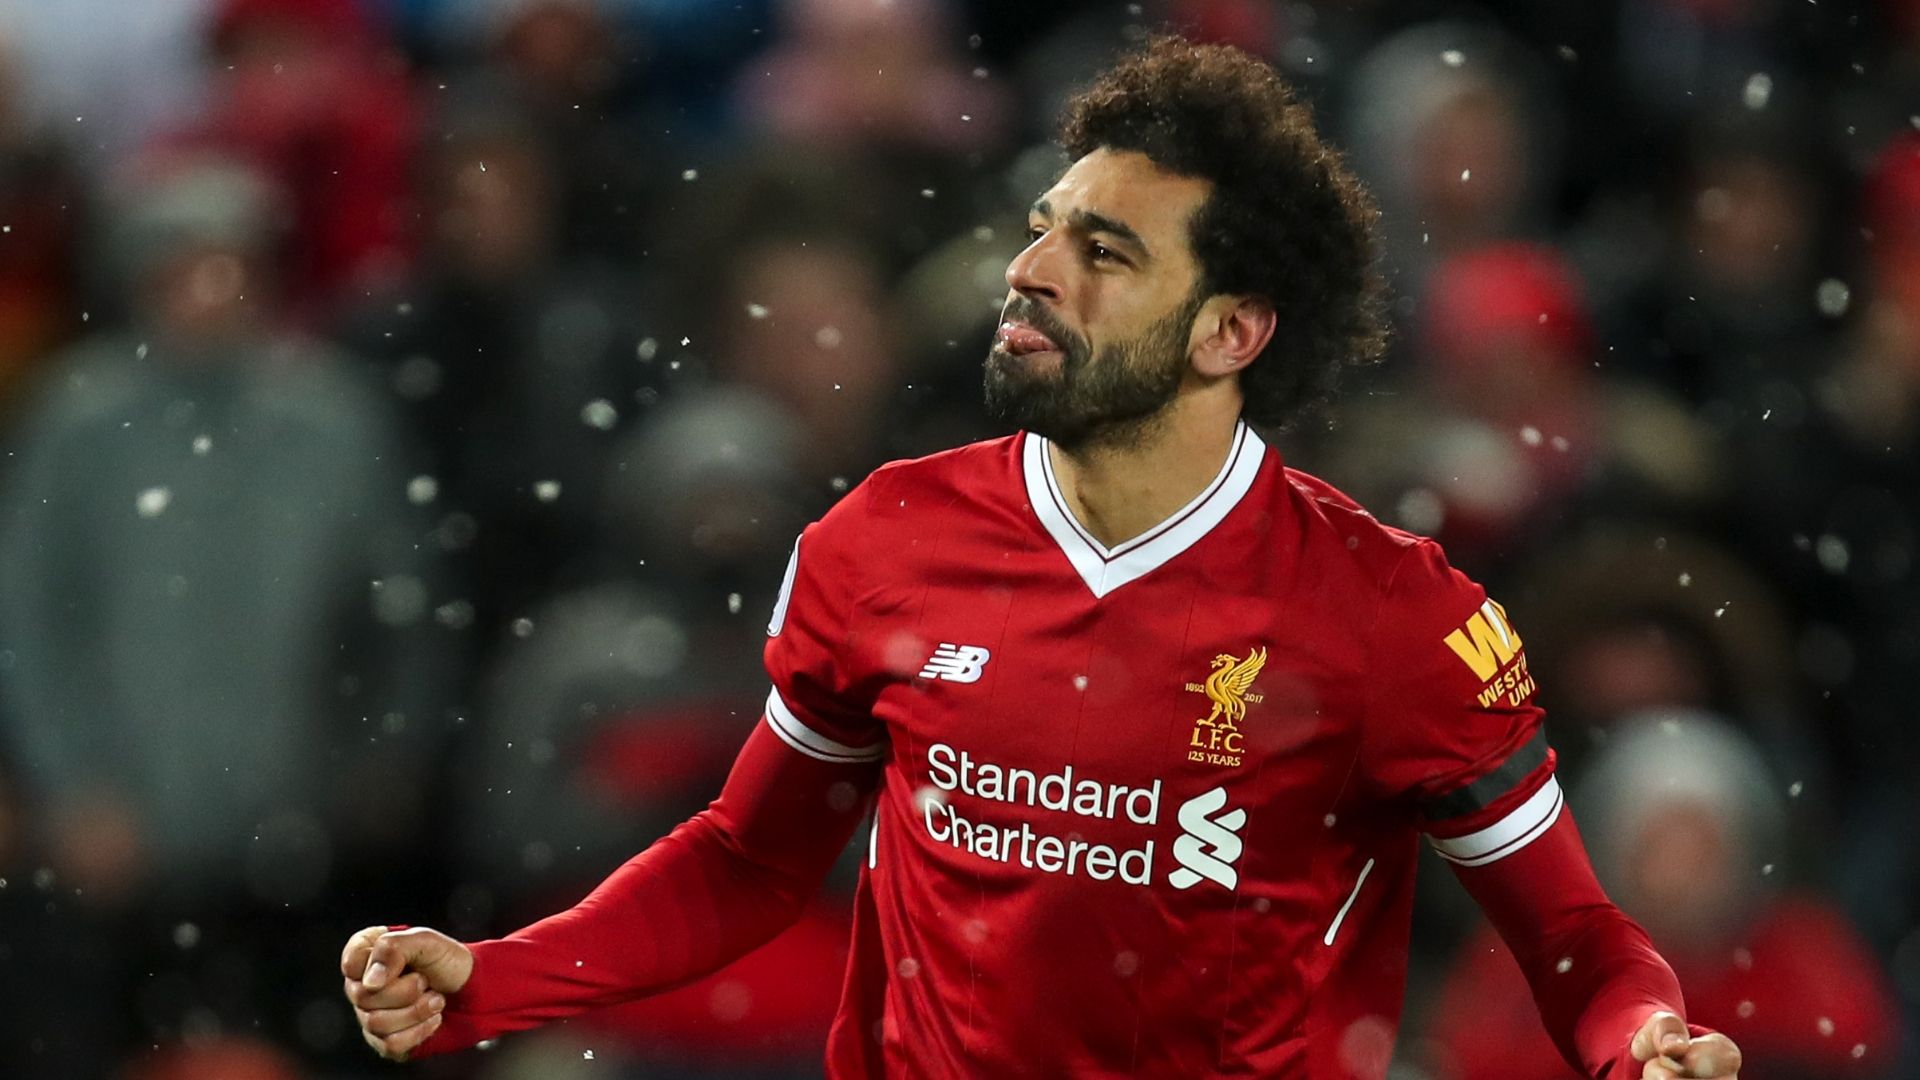 Salah leads Messi in race for Golden Shoe